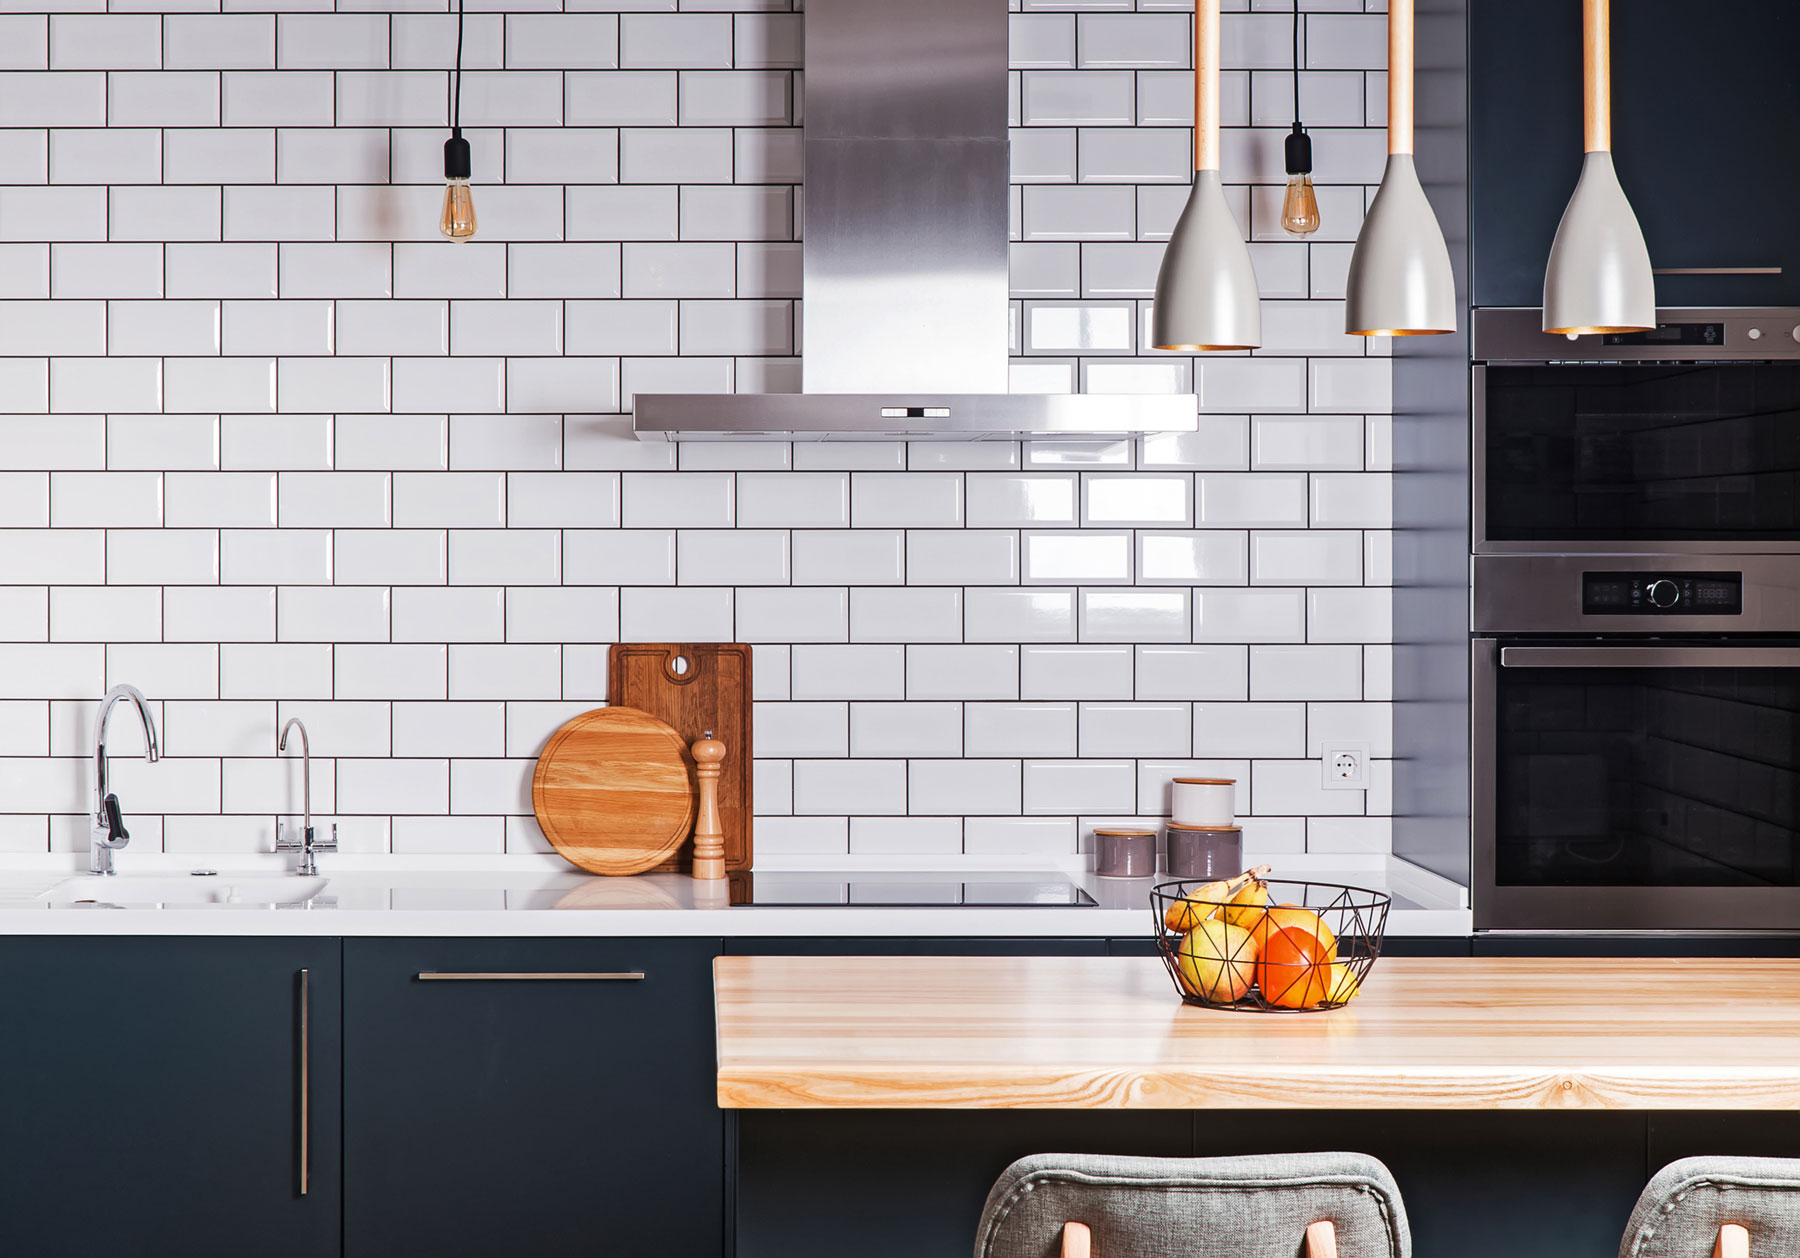 Backsplash tile ideas - Kitchen with subway tile backsplash